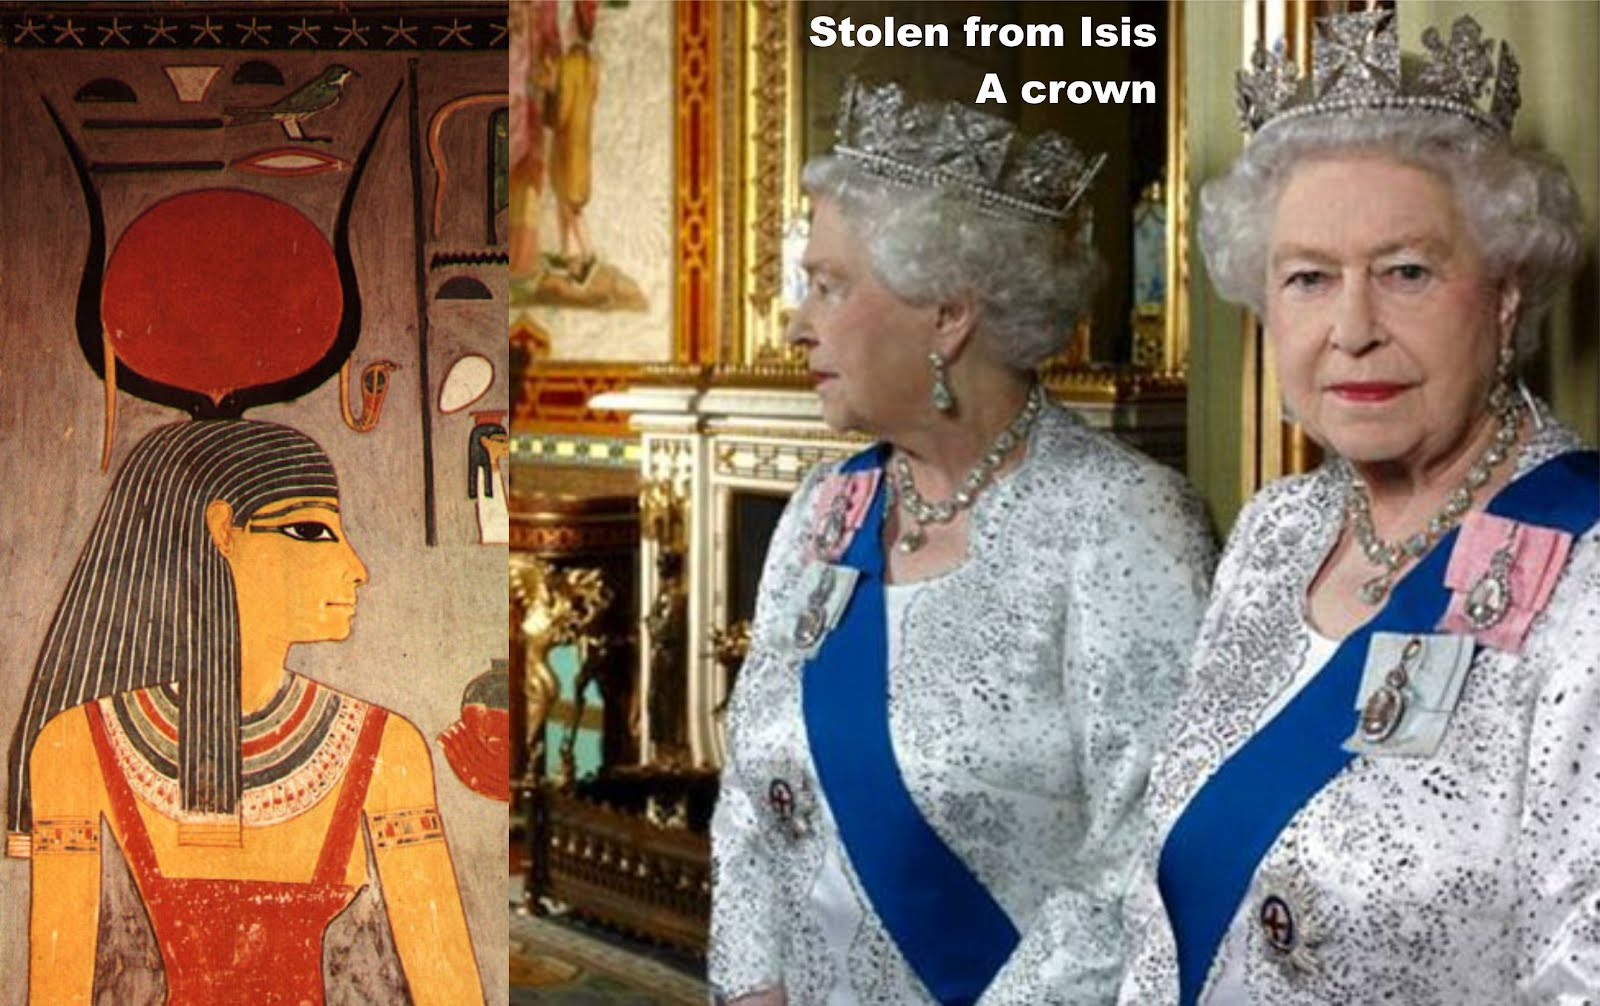 European bloodlines face end-time vortex of exposure  Stolen%2Bfrom%2BIsis.%2BA%2Bcrown.%2BQueen%2BElizabeth%2BII.